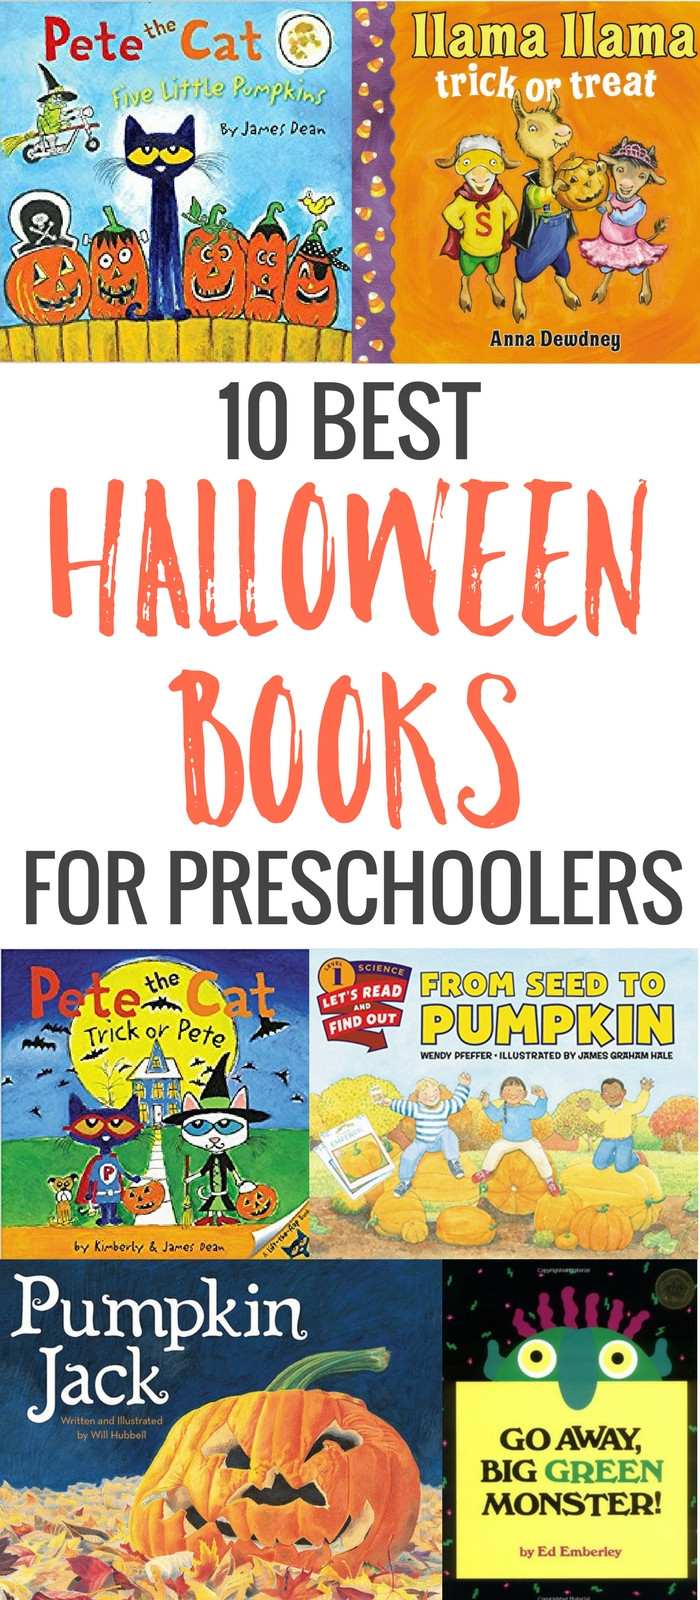 Try a few of these festive stories with your preschooler. Monsters, ghosts, pumpkins and trick or treating. Here are the 10 best Halloween books for kids.